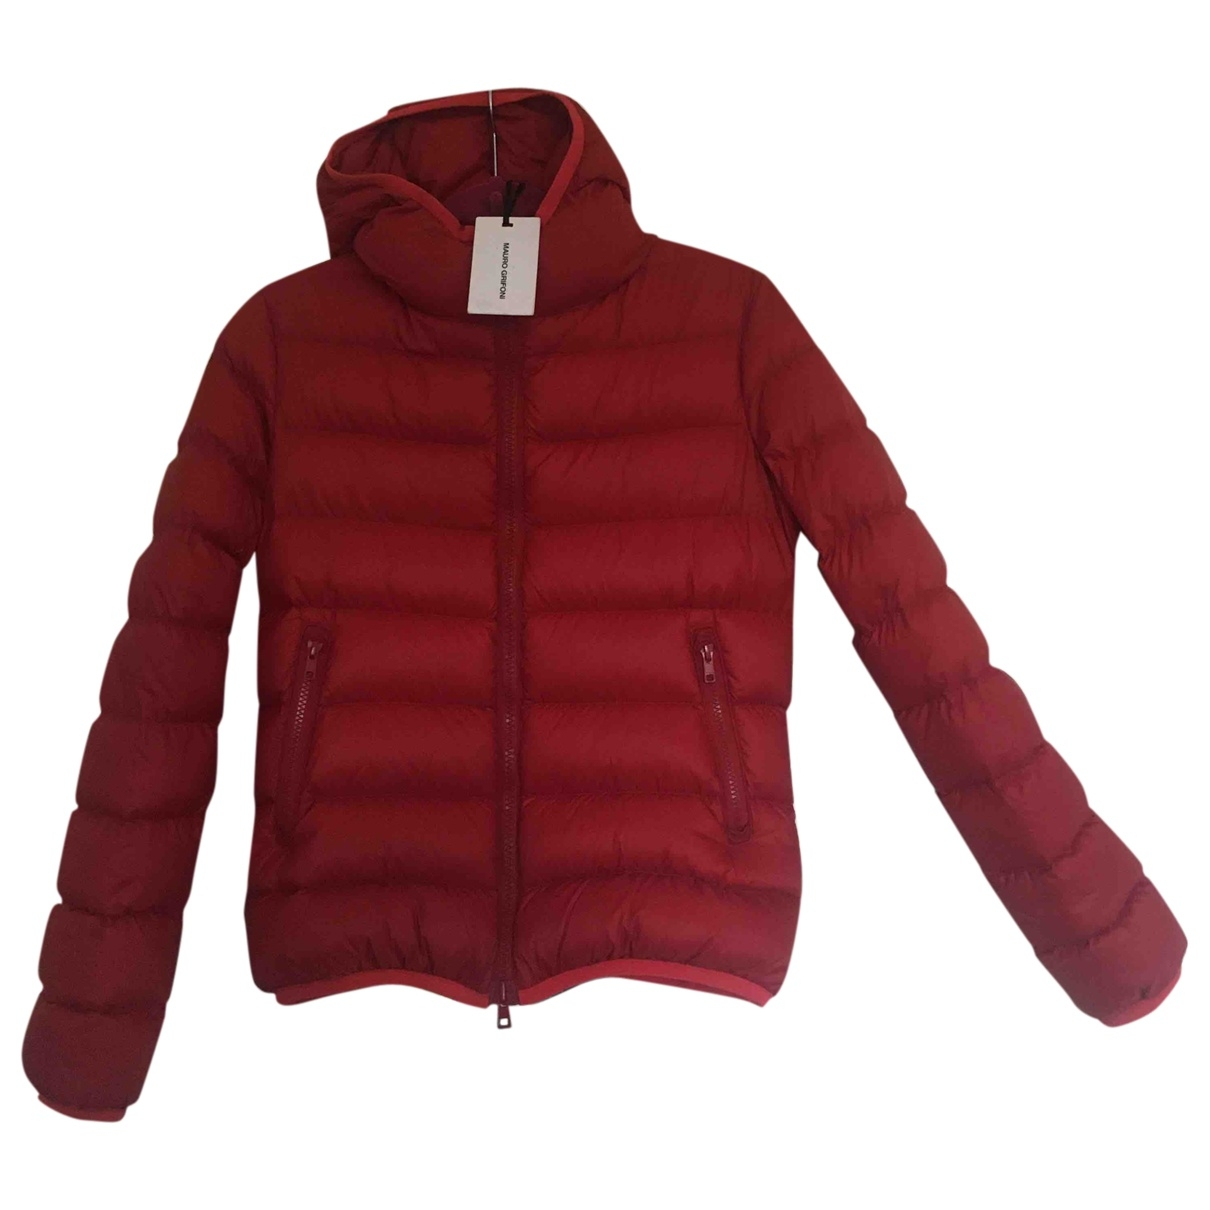 Mauro Grifoni \N Red jacket for Women 40 IT